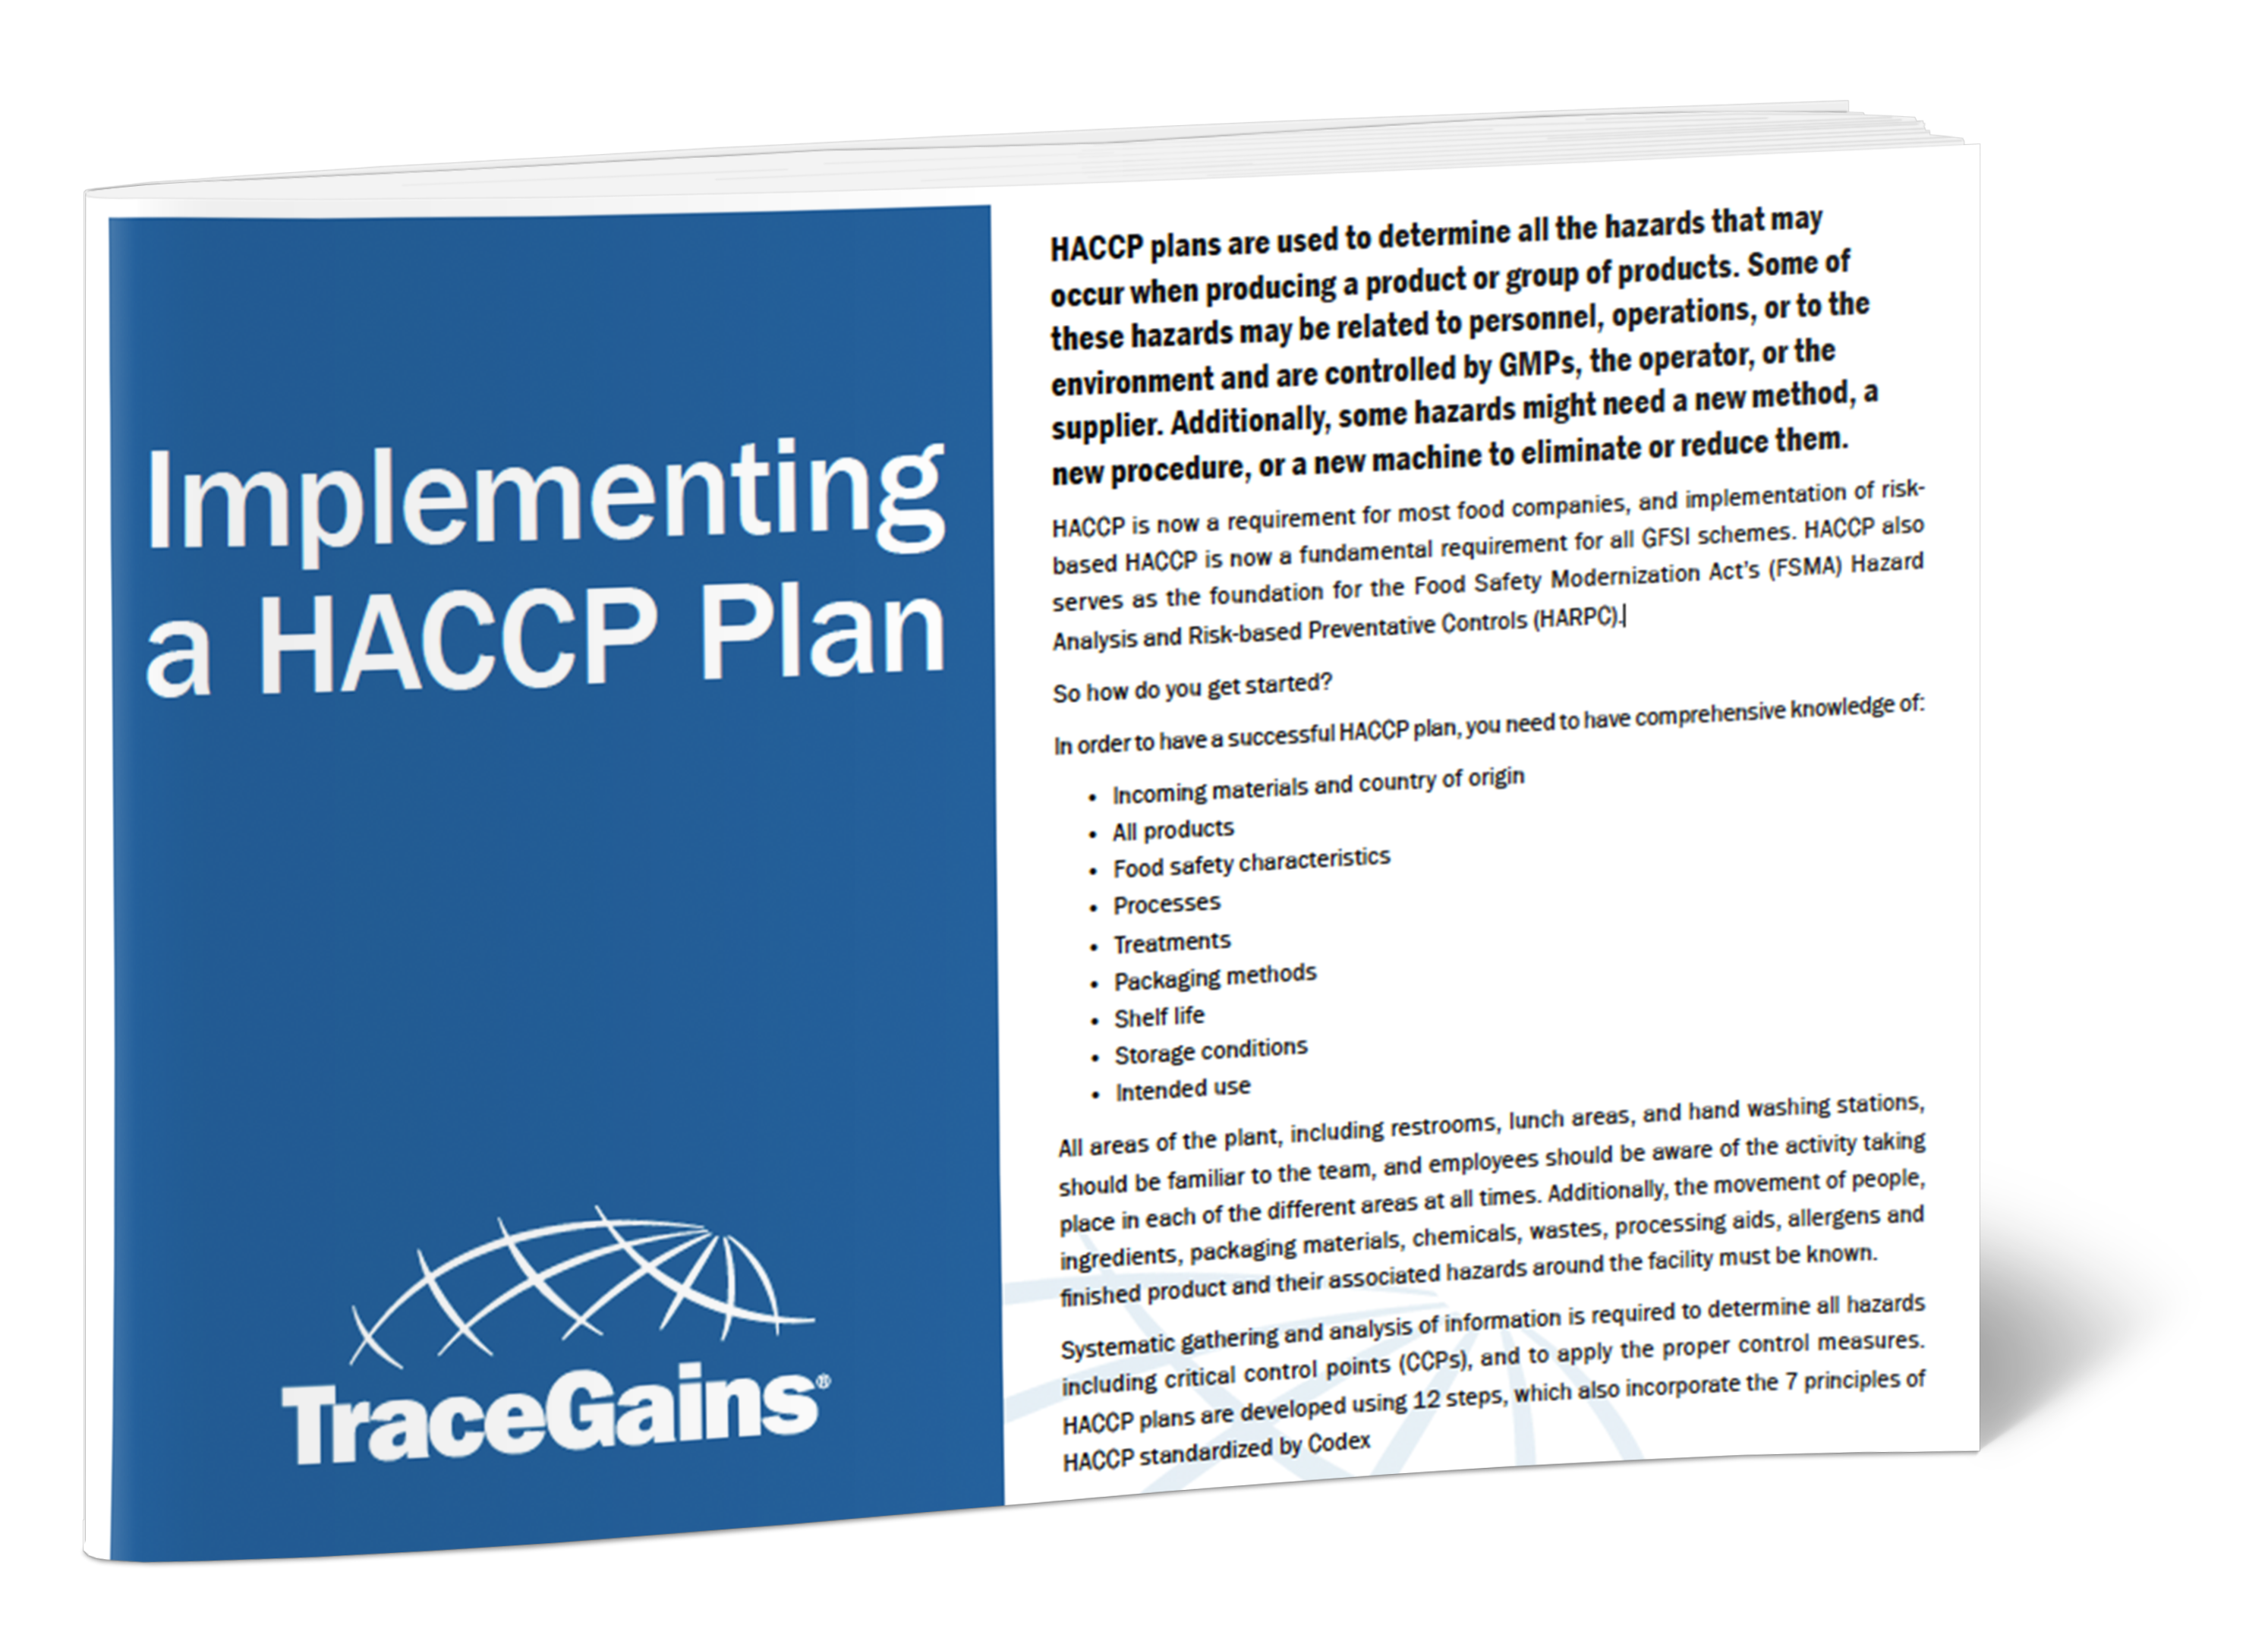 Implementing a HACCP Plan